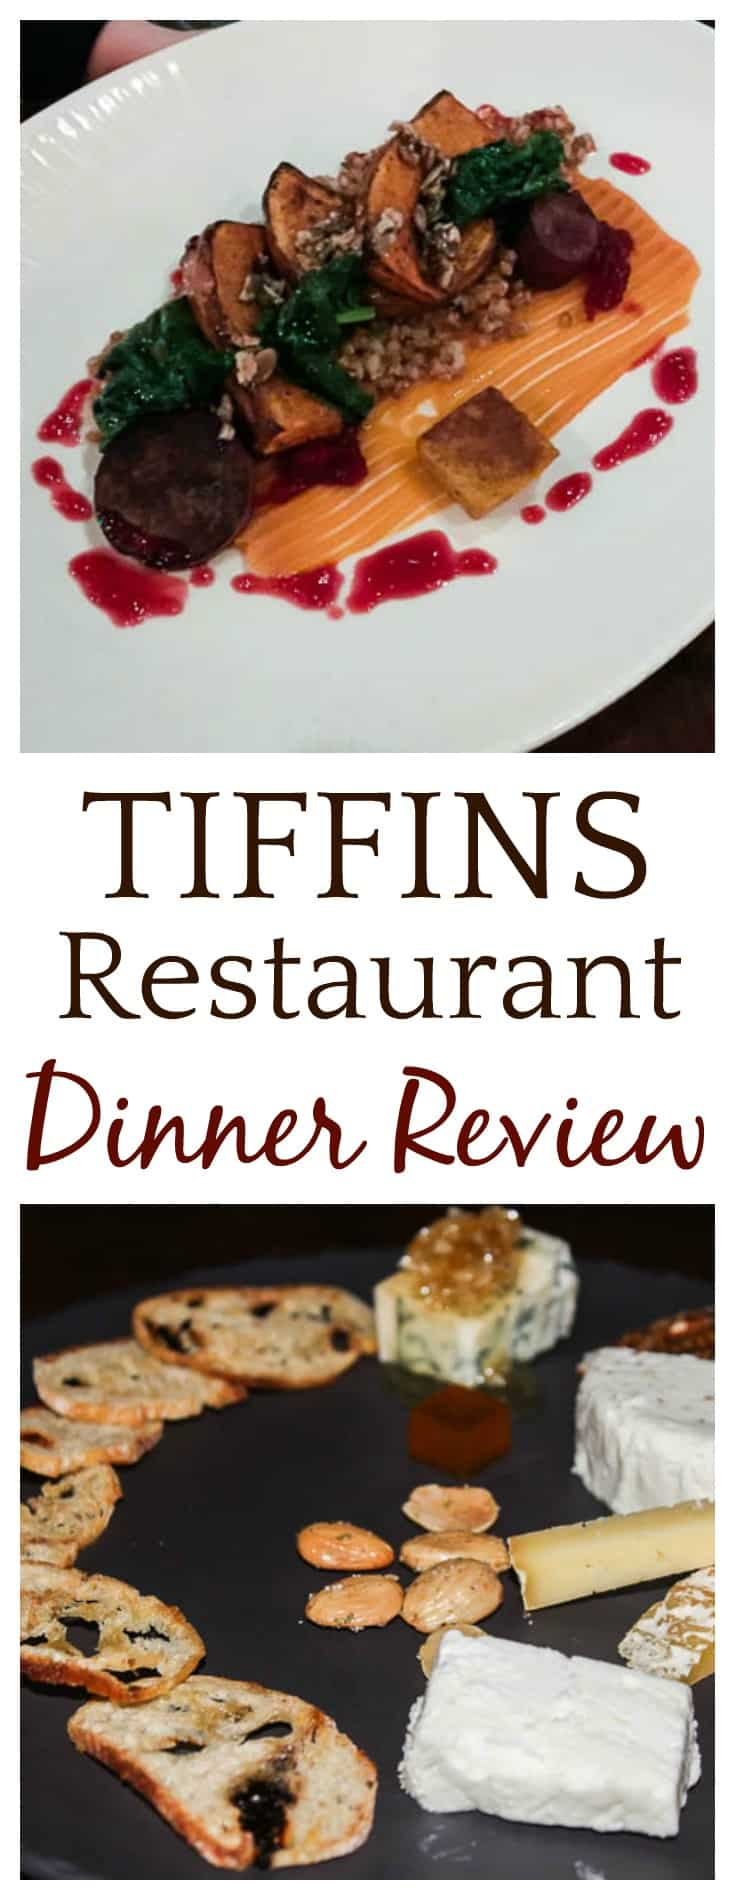 This Tiffins Restaurant dinner review is based on my experience when visiting the restaurant in November 2017 with my family. | #disneydining #tiffins #restaurants, #disneyworld #animalkingdom